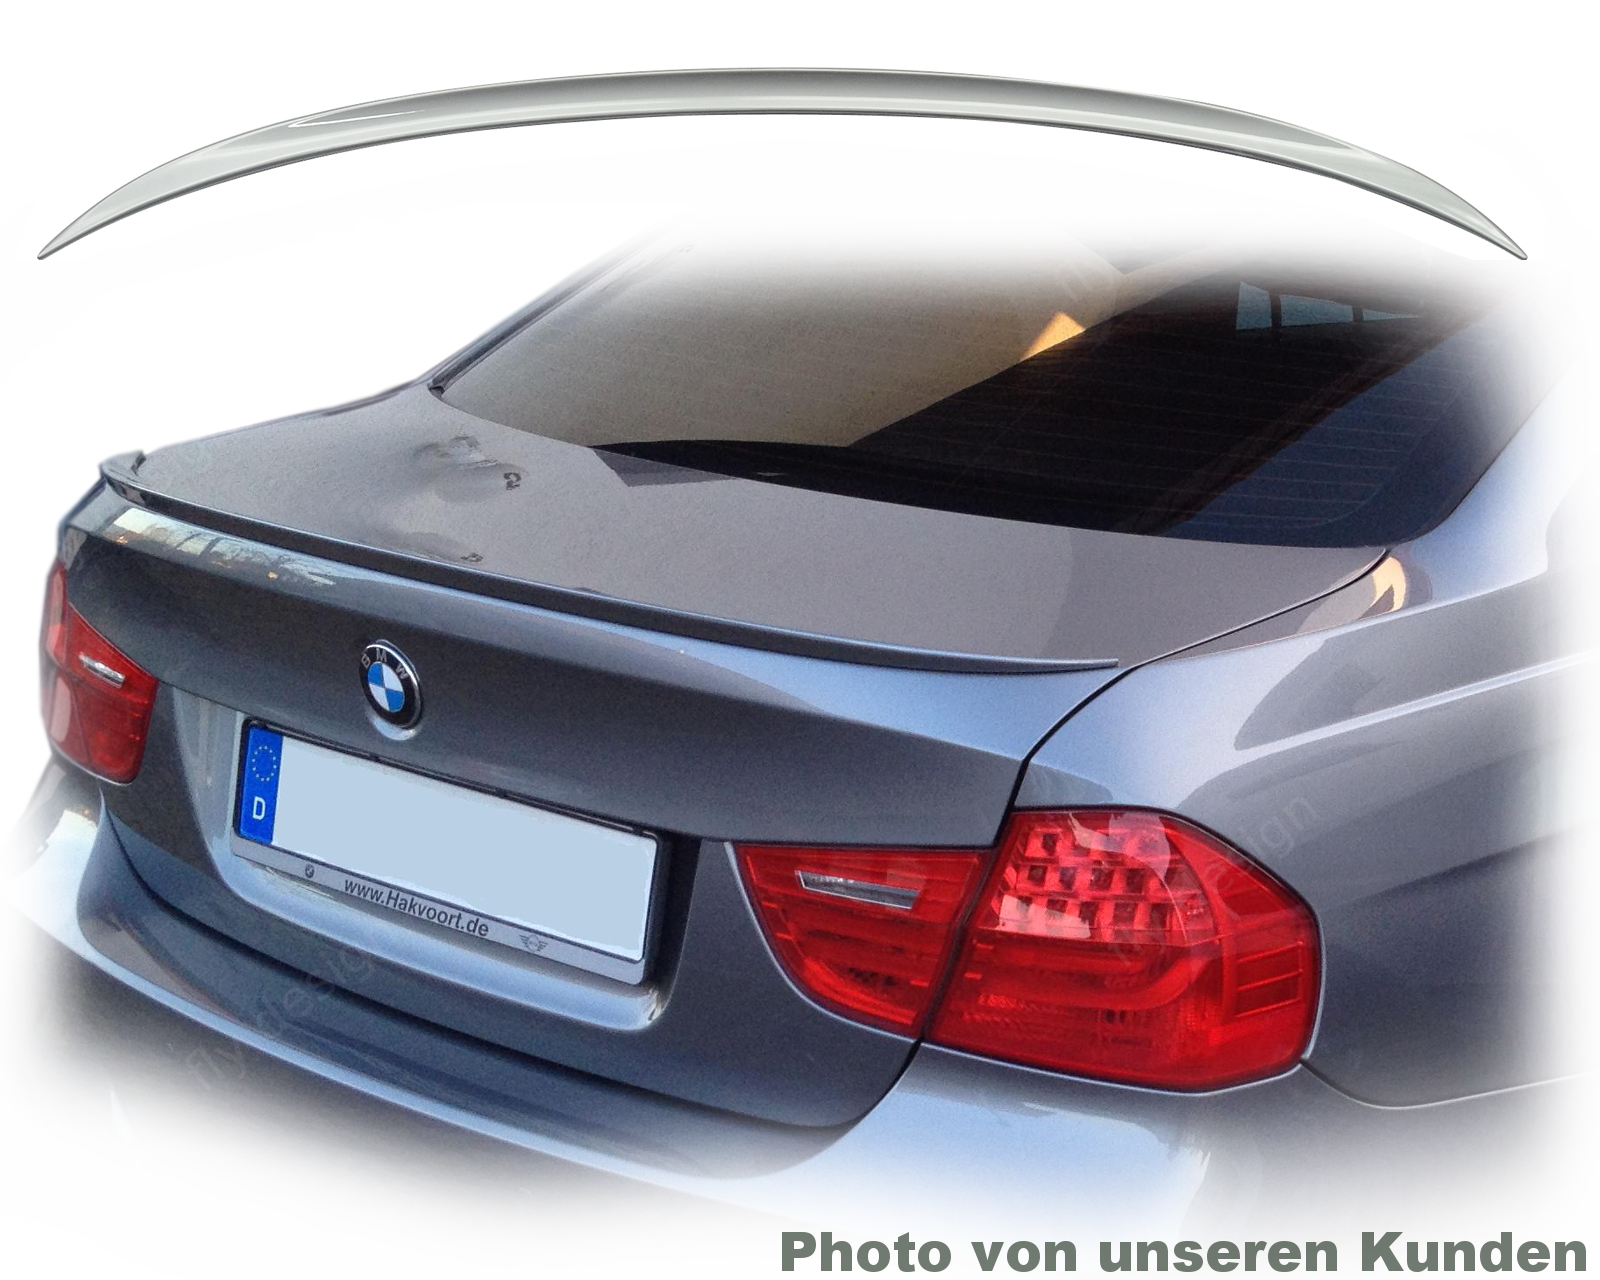 bmw e90 spoiler heckspoiler heckfl gel m3 lackiert spacegrau a52 type m3 ebay. Black Bedroom Furniture Sets. Home Design Ideas